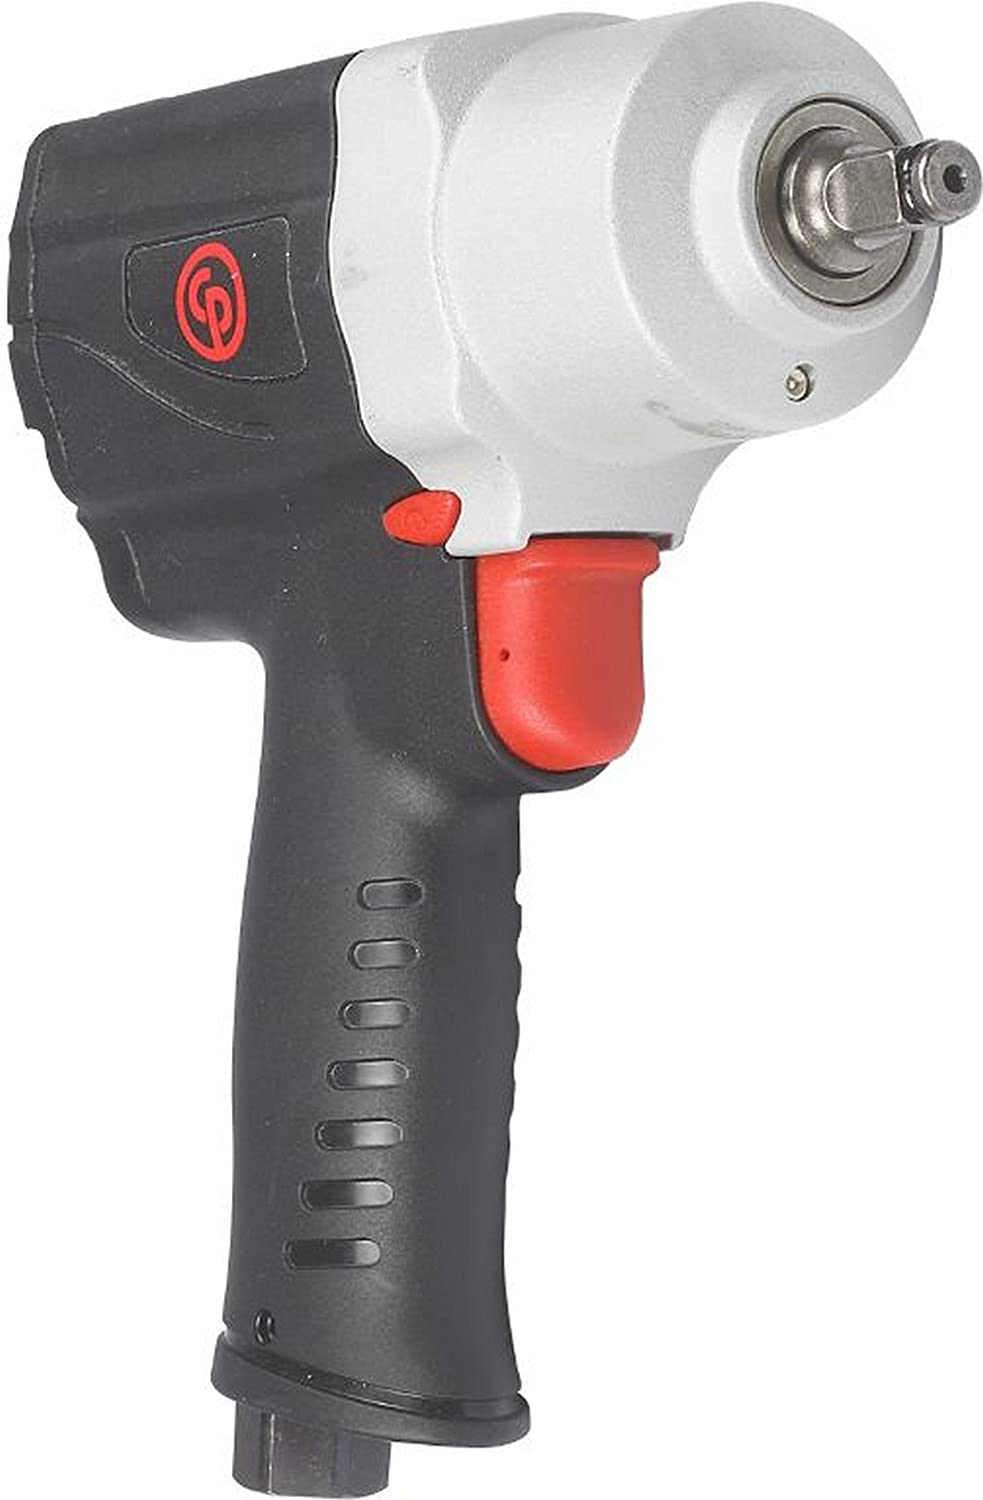 Chicago Pneumatic CP7729 Ultra Duty 3 8-Inch Composite Impact